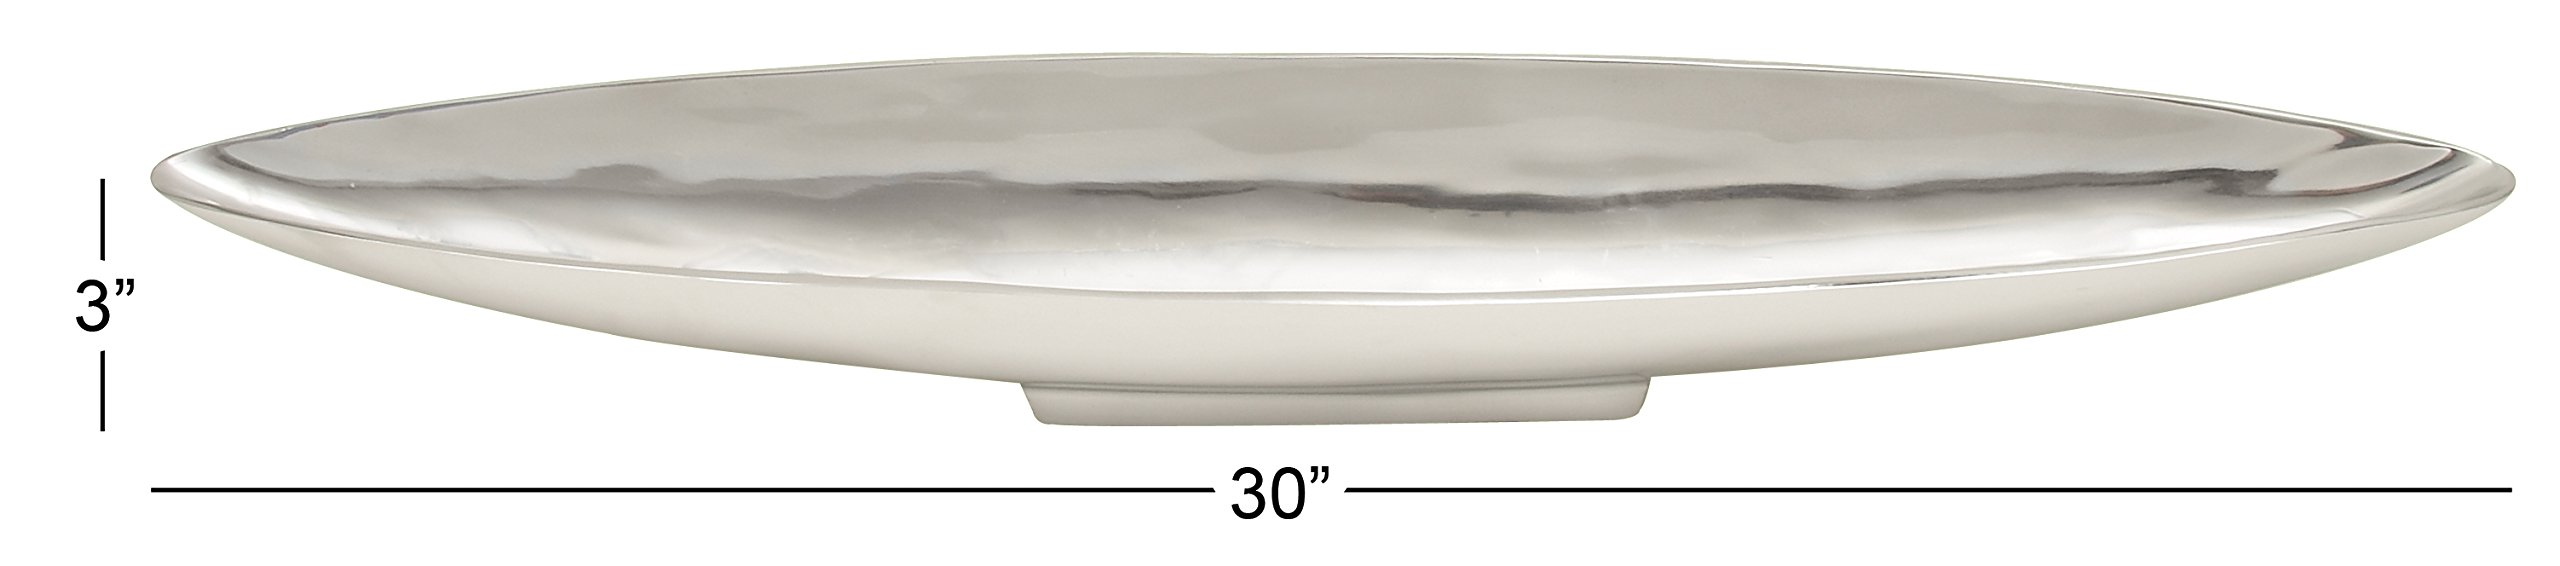 Deco 79 Aluminum Boat Tray, 30 by 3-Inch by Deco 79 (Image #1)